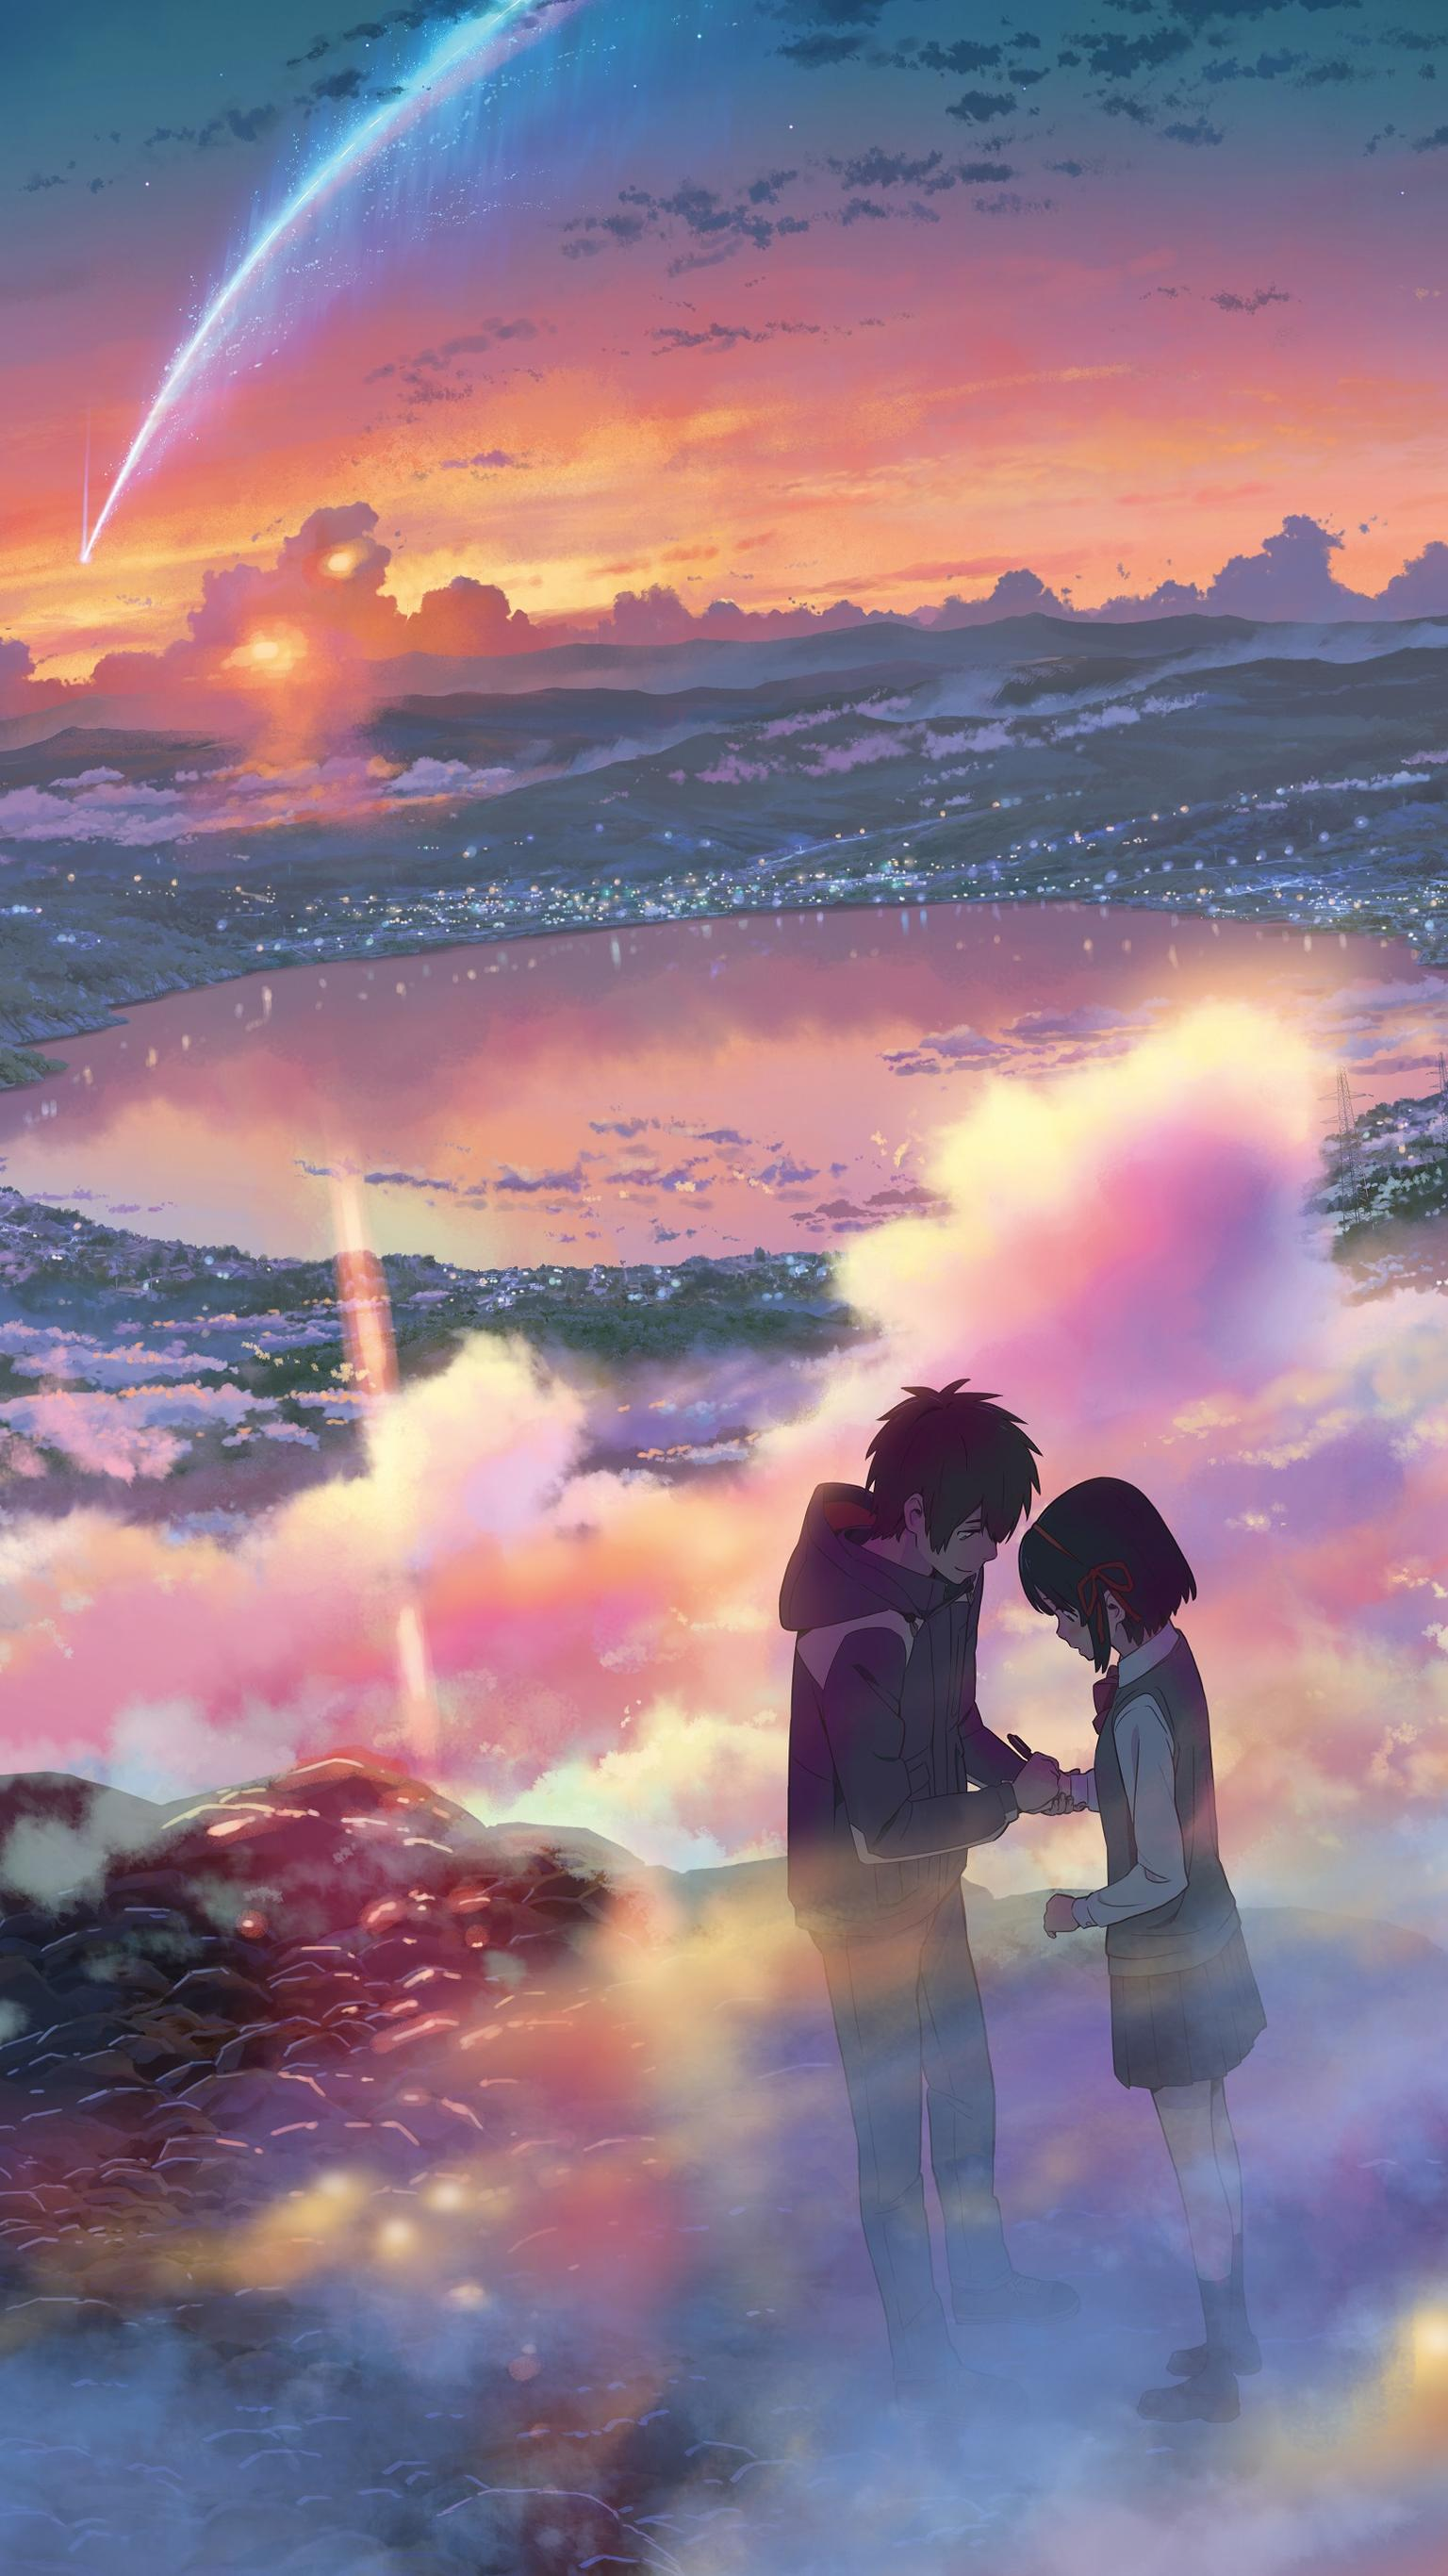 Your Name Phone Wallpapers - Top Free